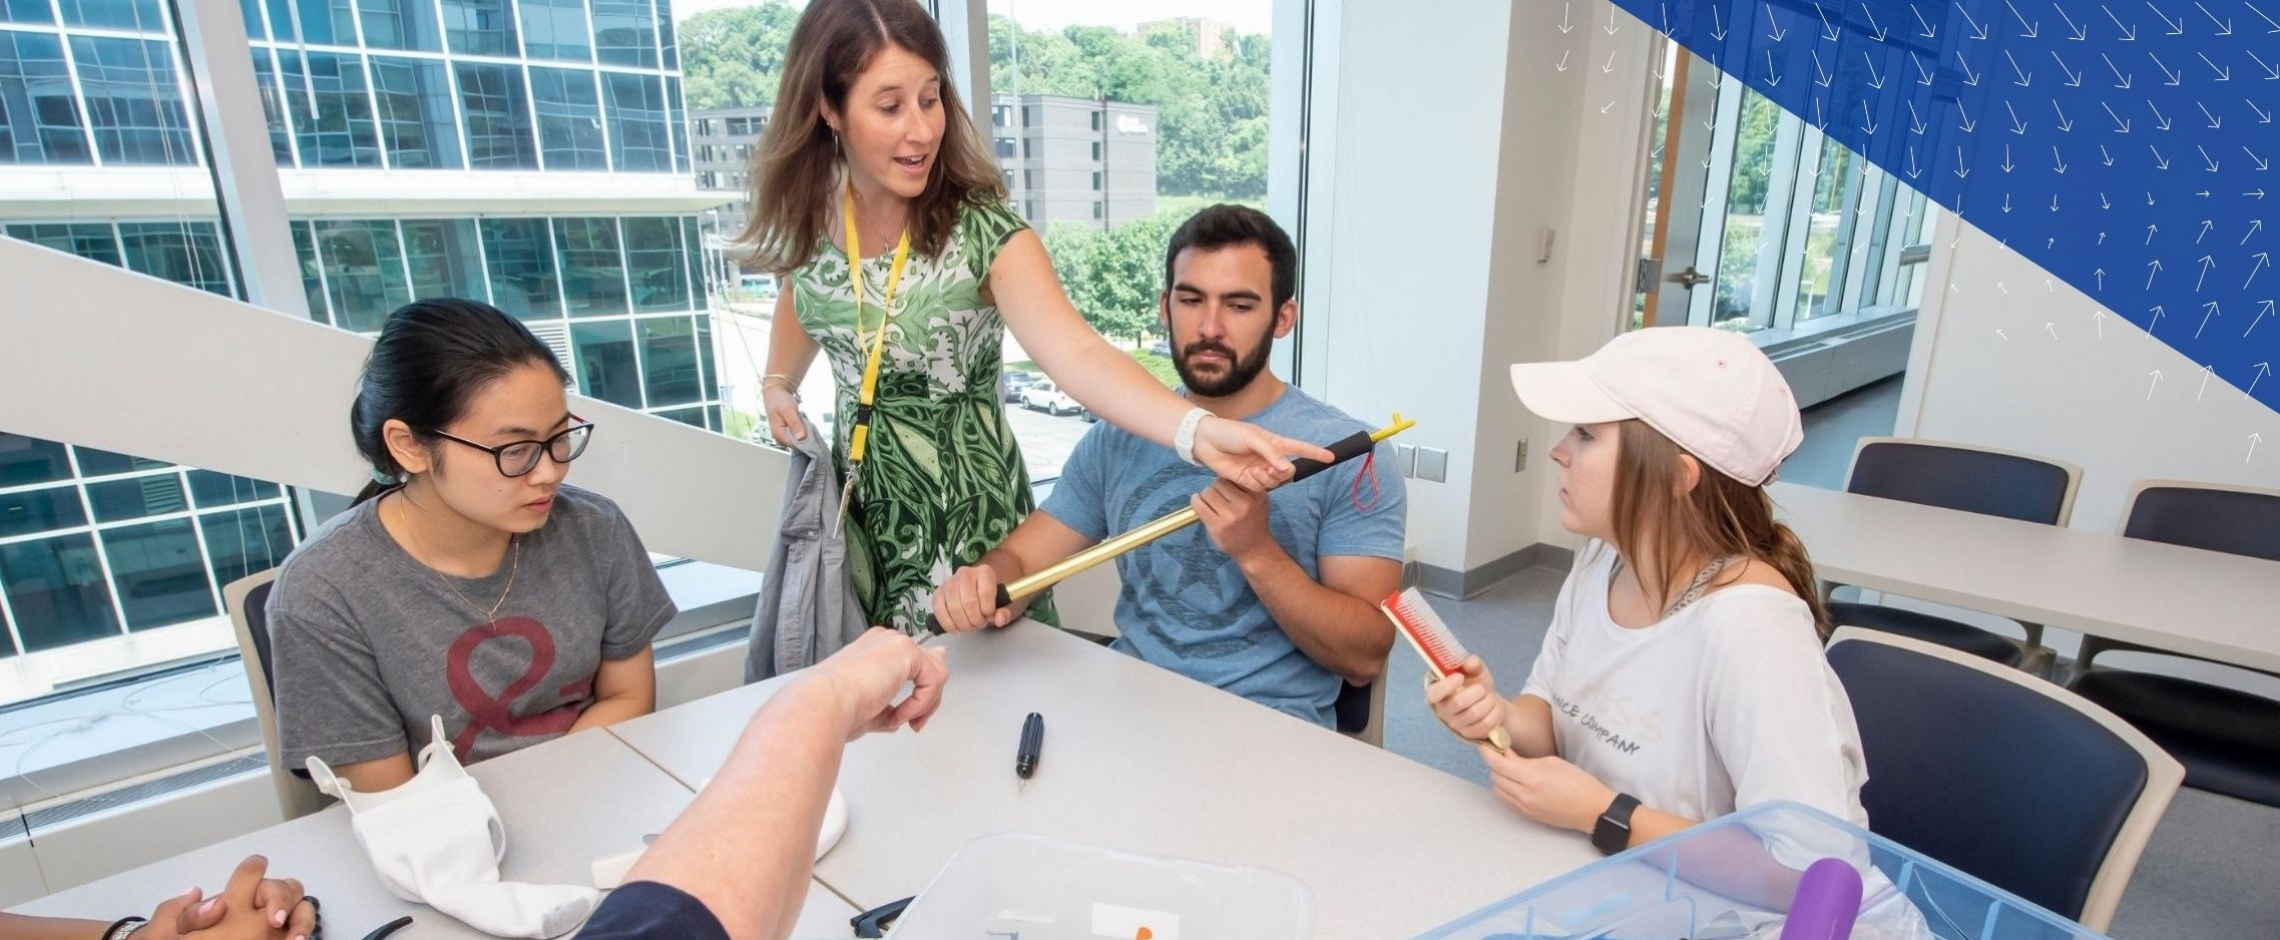 OT instructor showing students how to use assistive devices